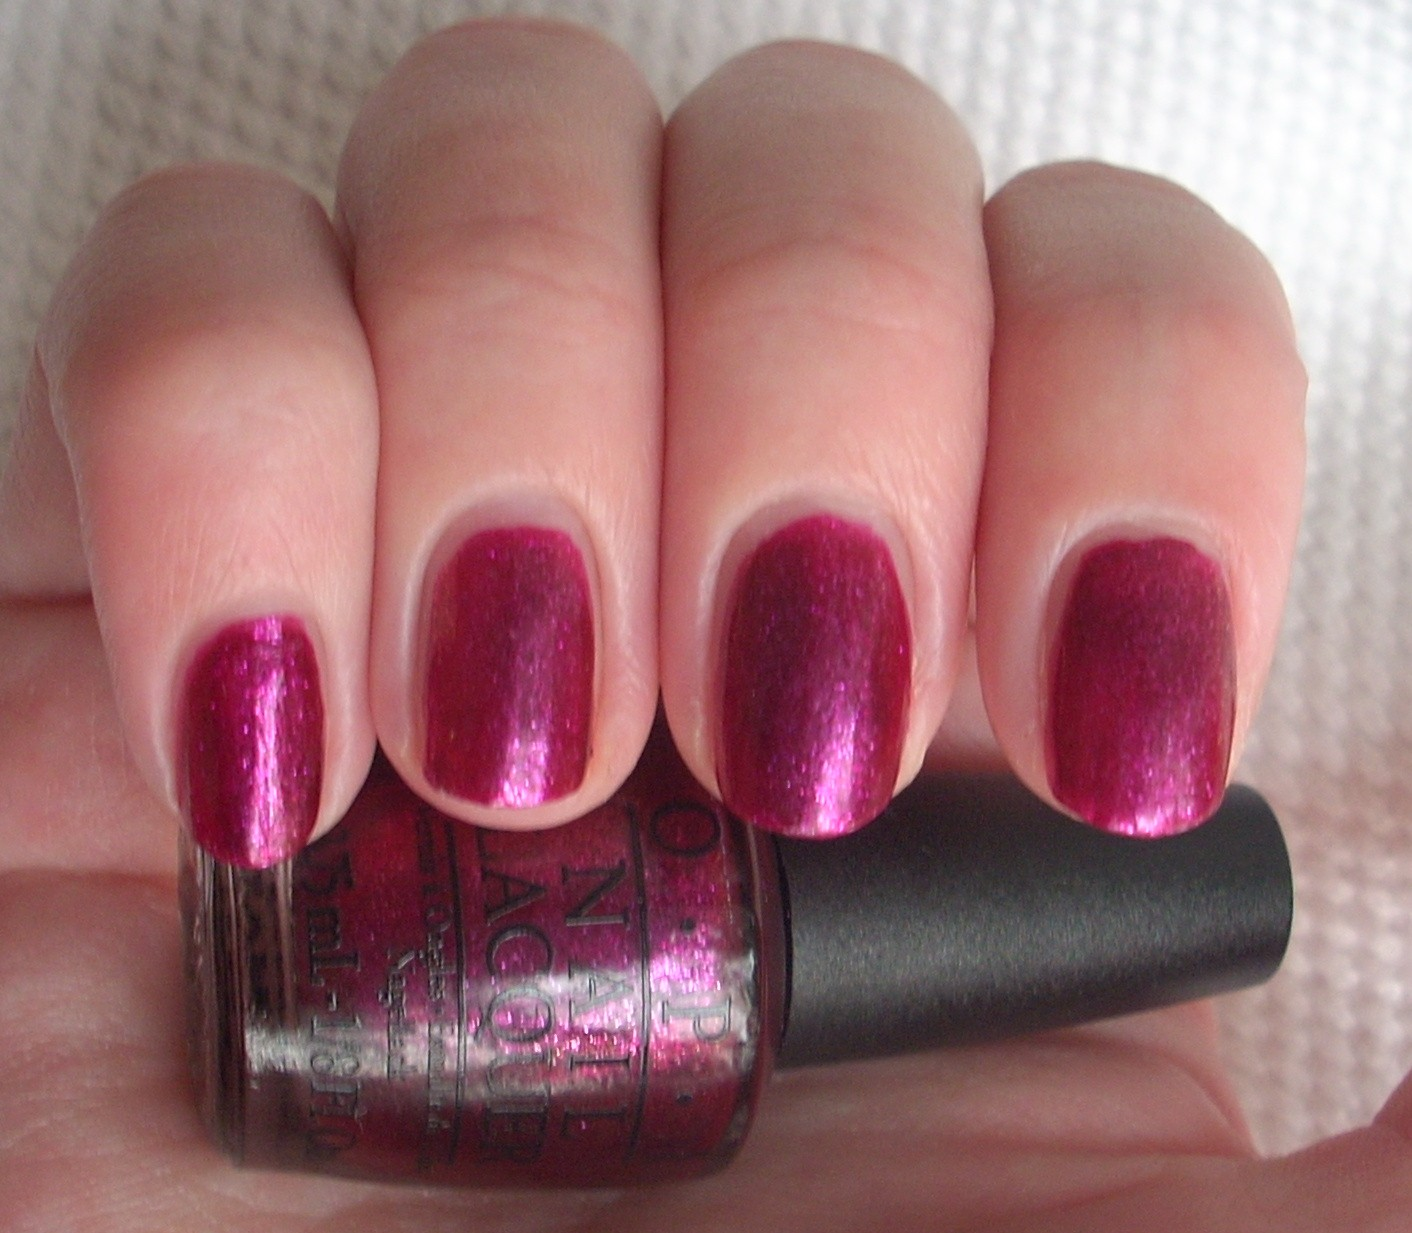 OPI The One That Got Away nail polish review | Through The Looking Glass